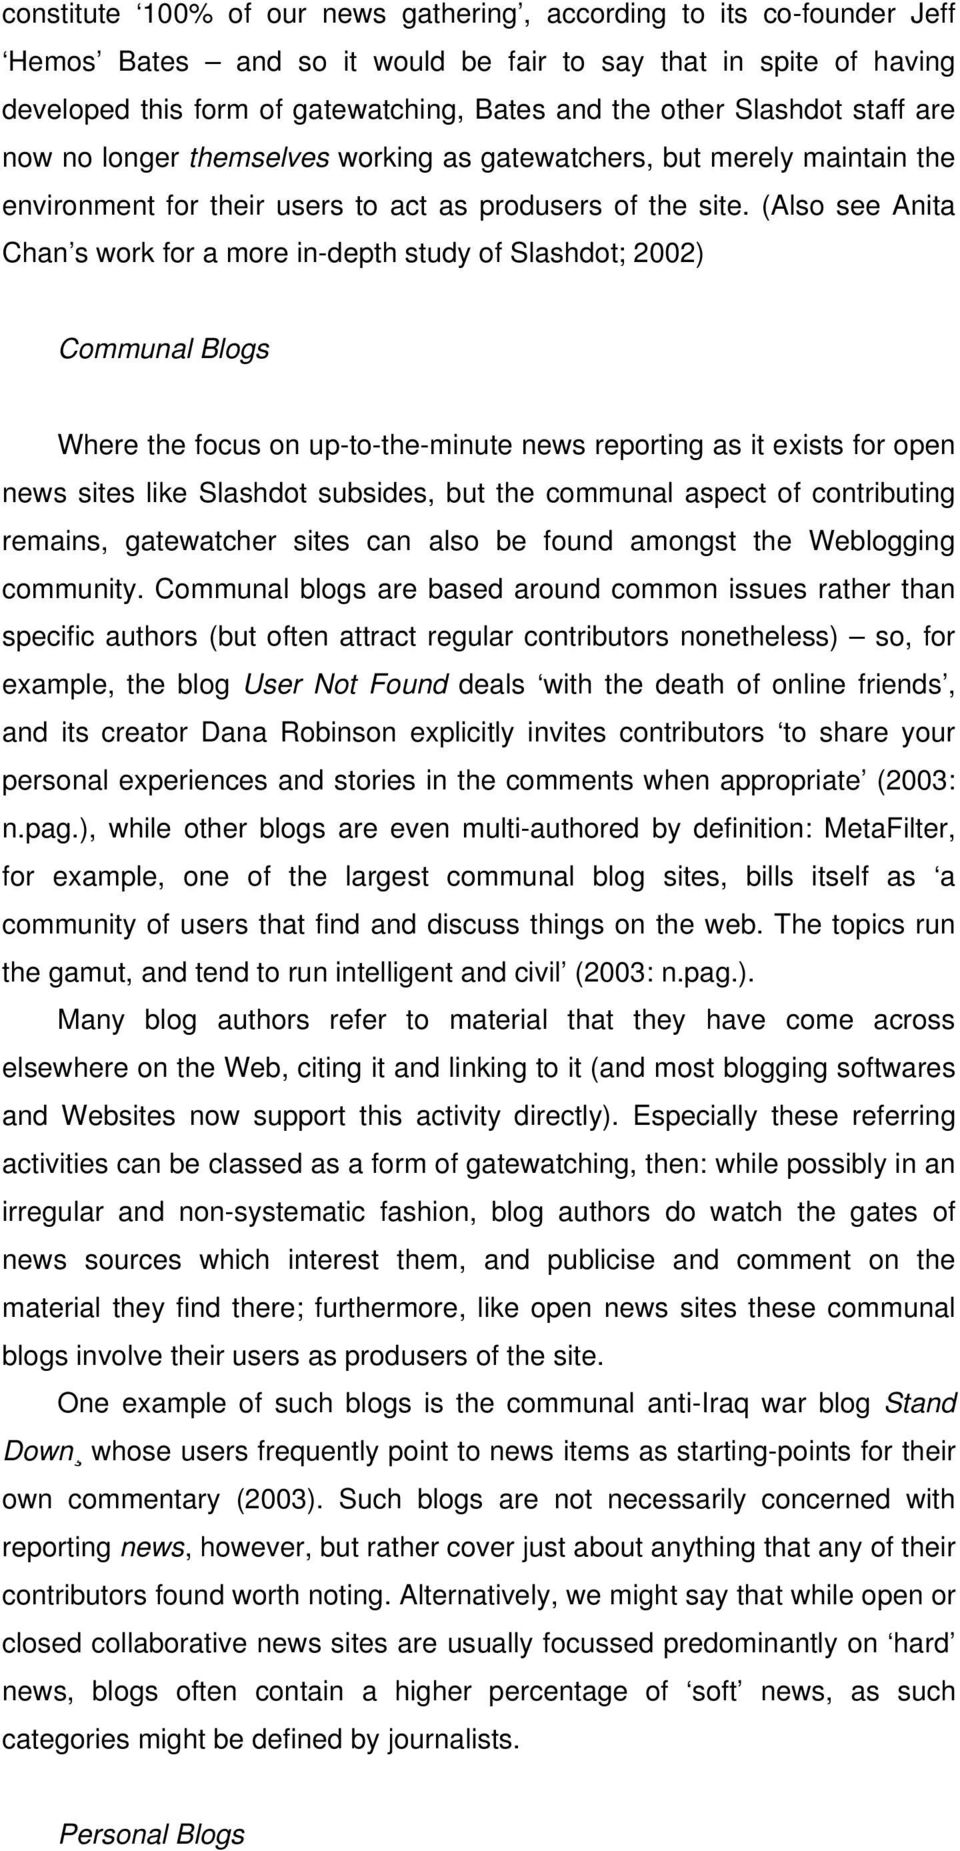 (Also see Anita Chan s work for a more in-depth study of Slashdot; 2002) Communal Blogs Where the focus on up-to-the-minute news reporting as it exists for open news sites like Slashdot subsides, but